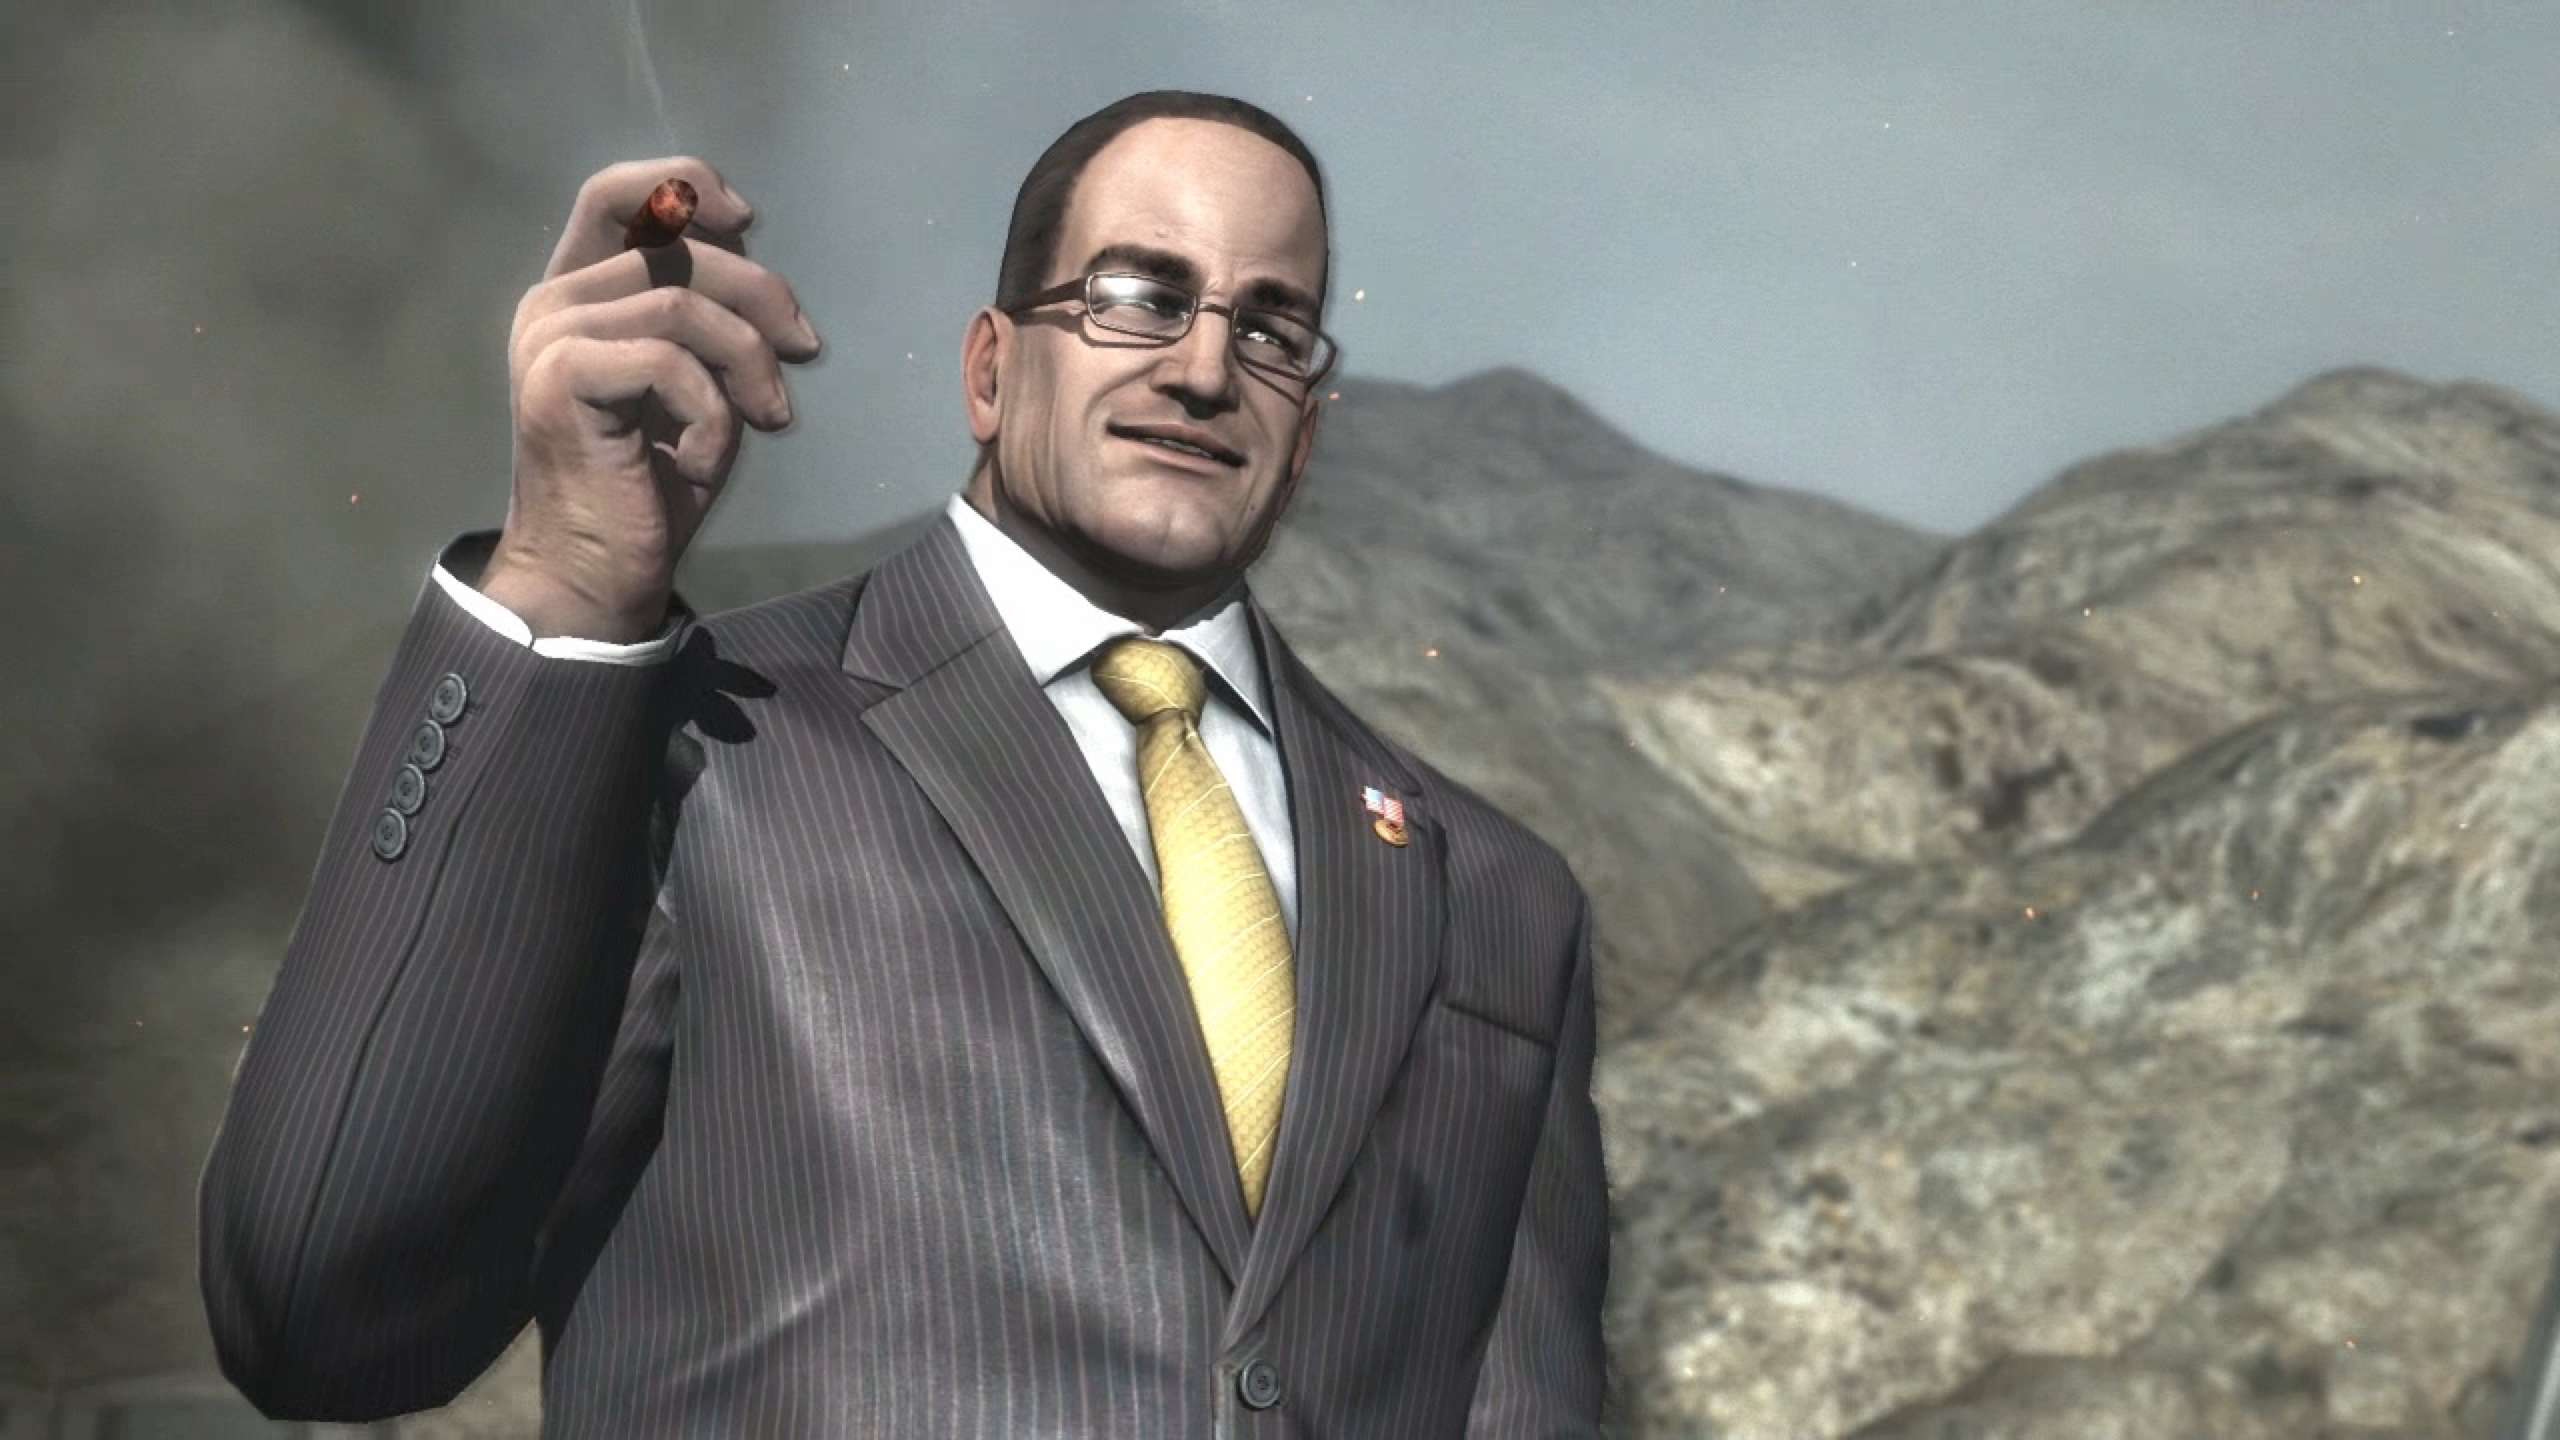 A Look Back On Metal Gear Rising's Last Boss, Who Wanted To Make America Great Again